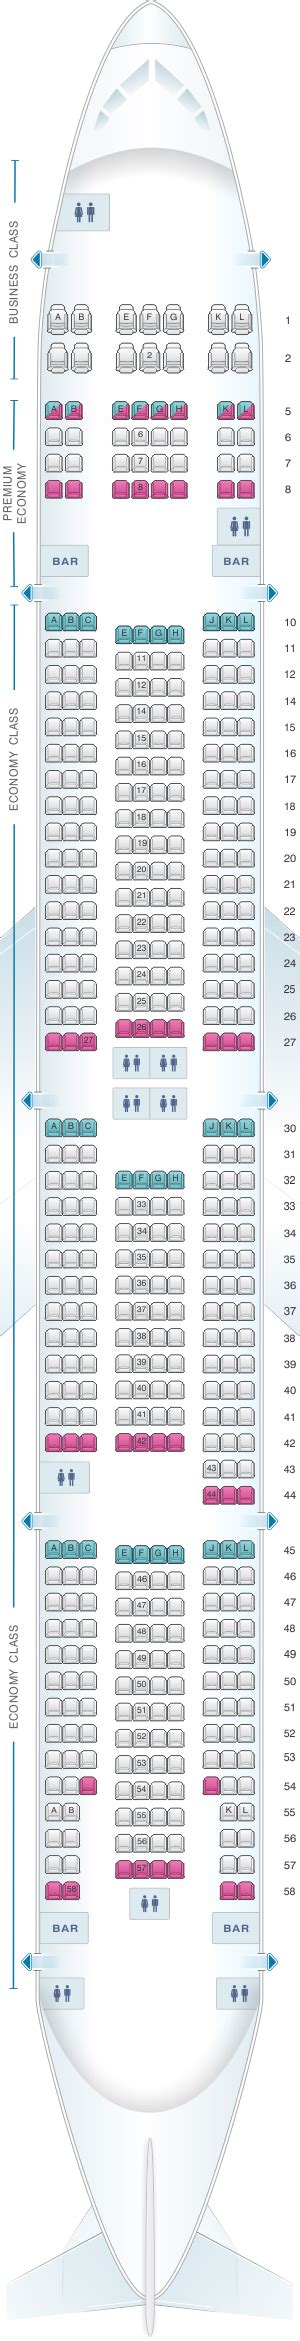 Seat Map Boeing 777 300er Air France | Brokeasshome